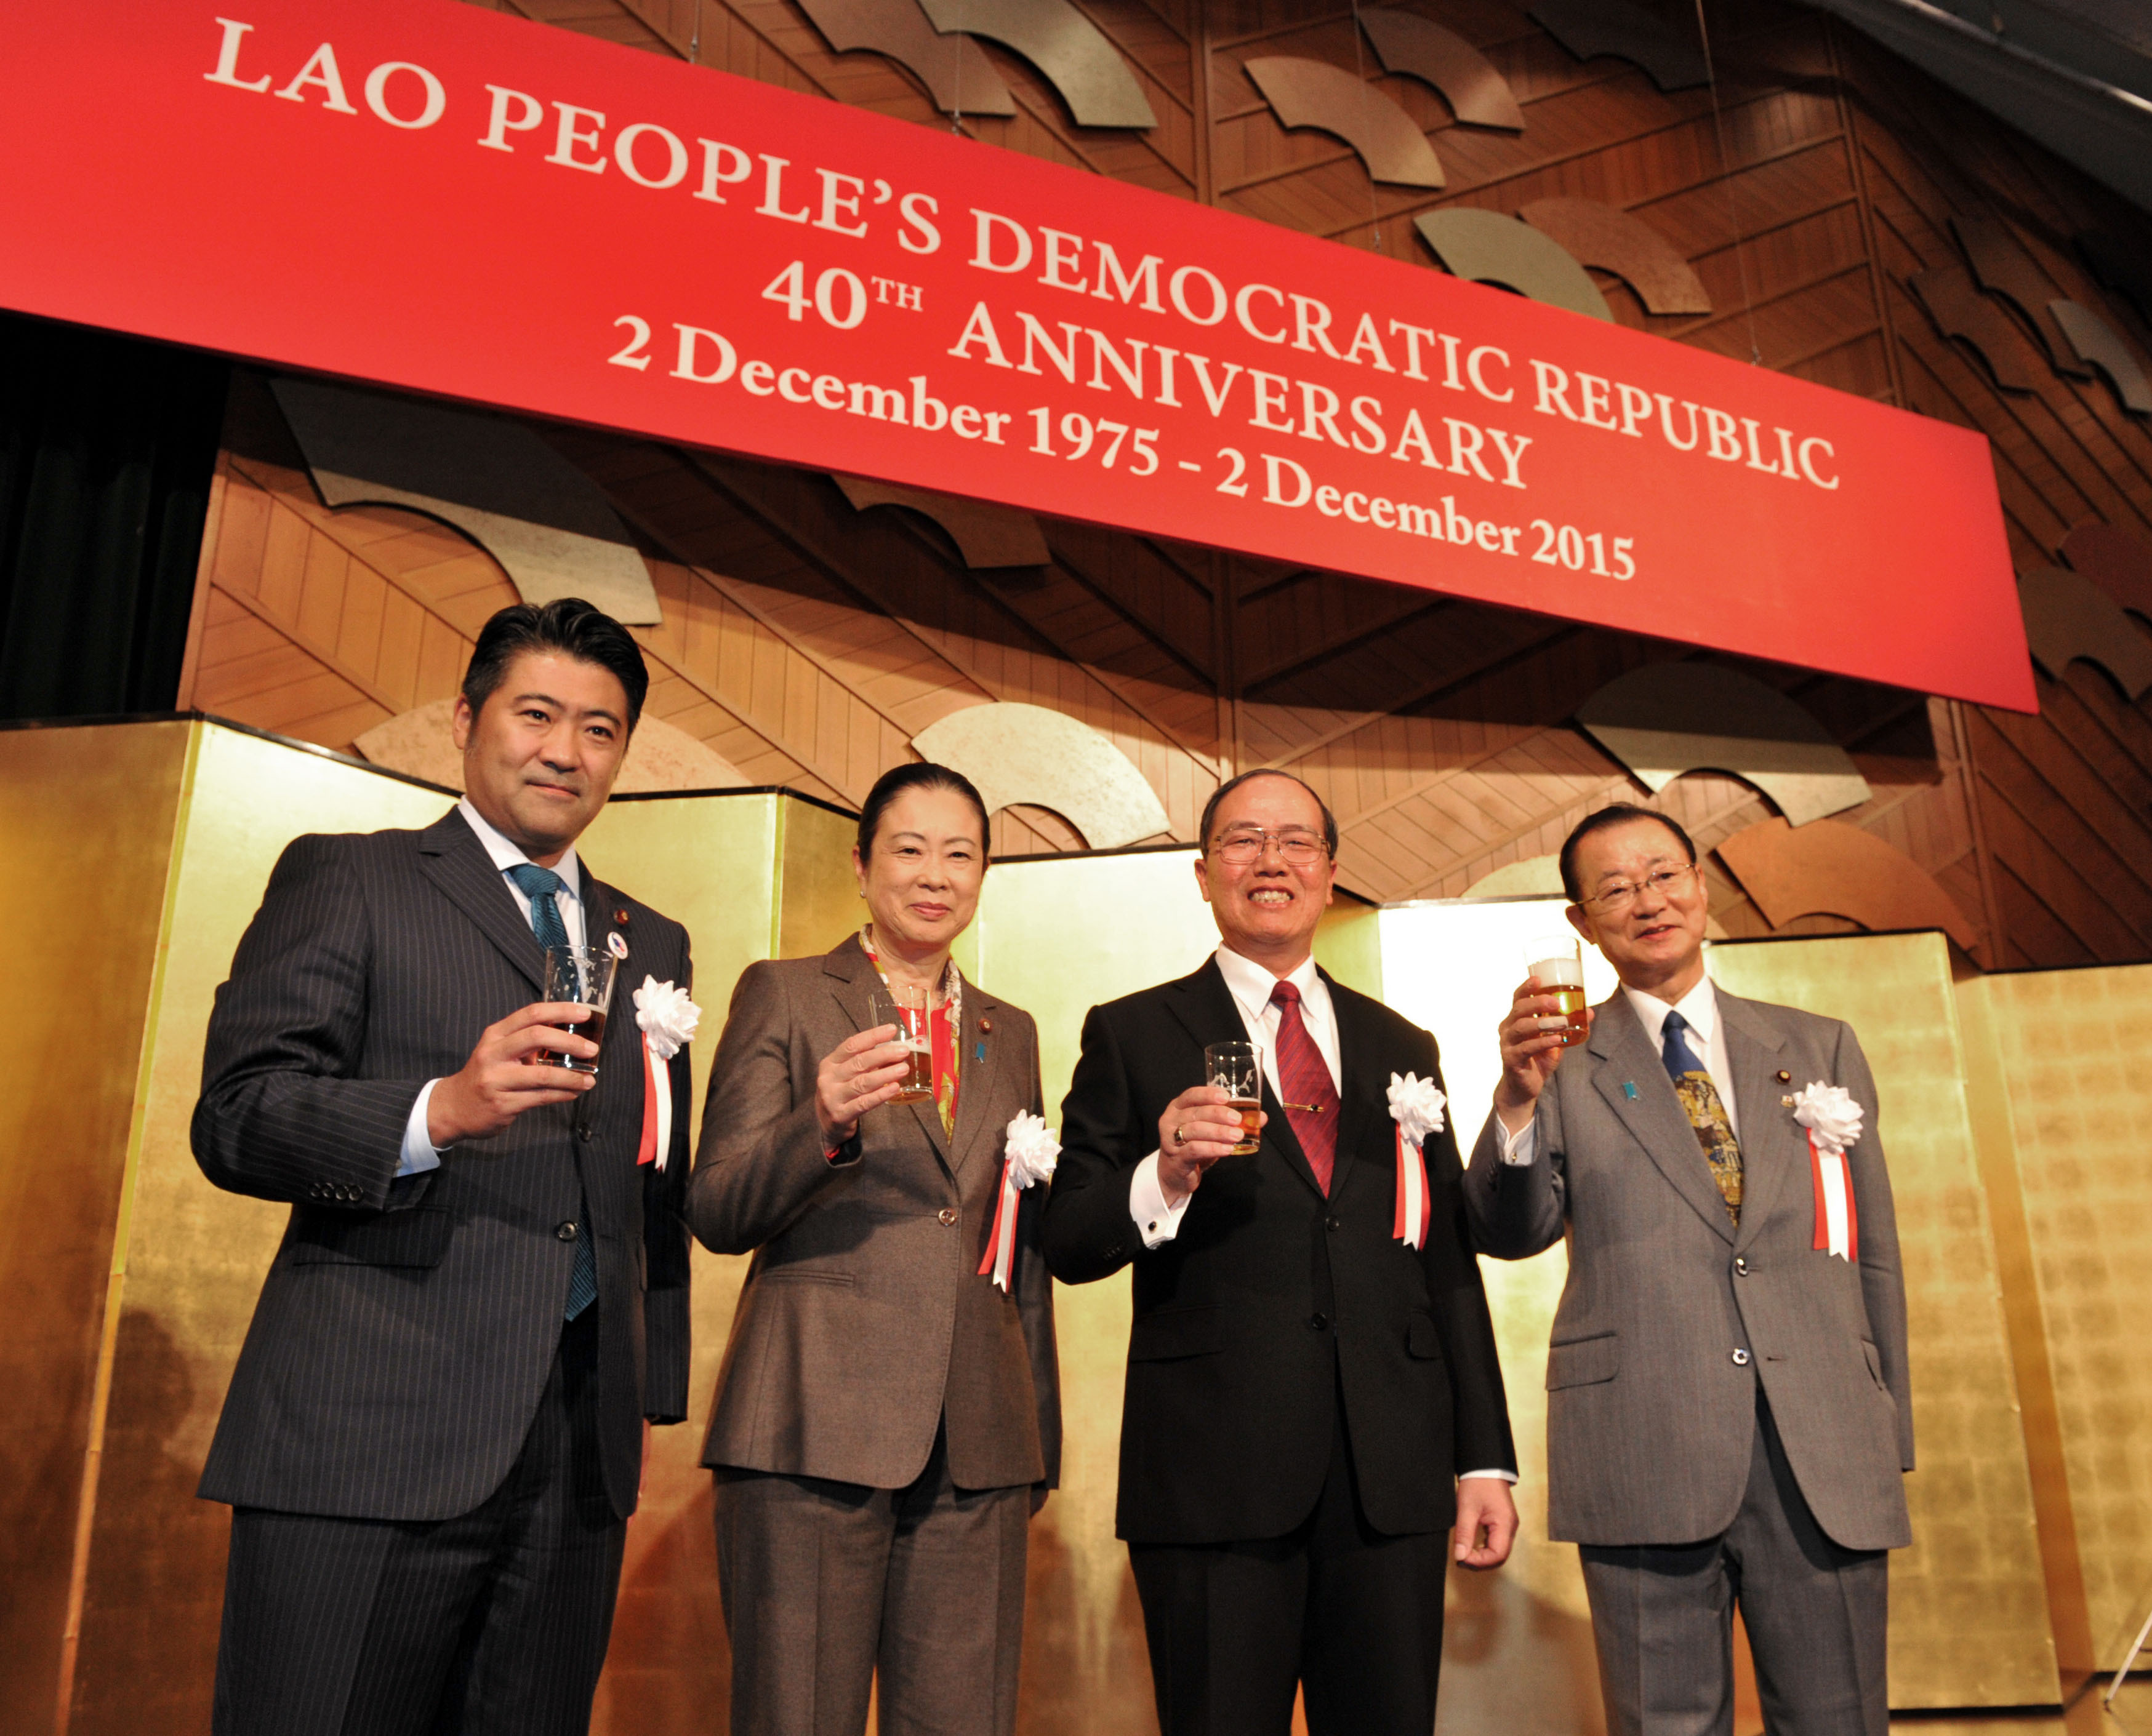 Lao People's Democratic Republic Ambassador Khenthong Nuanthasing (second from right) shares a toast with (from left) State Minister for Foreign Affairs Seiji Kihara; Chairman of the Committee on Foreign Affairs of the House of Representatives Shinako Tsuchiya; and Chairman of the Japan-Laos Parliamentary Friendship League Takeo Kawamura during a reception to celebrate the country's 40th Anniversary of the National Day, at the Hotel New Otani Tokyo on Dec. 3. |  YOSHIAKI MIURA